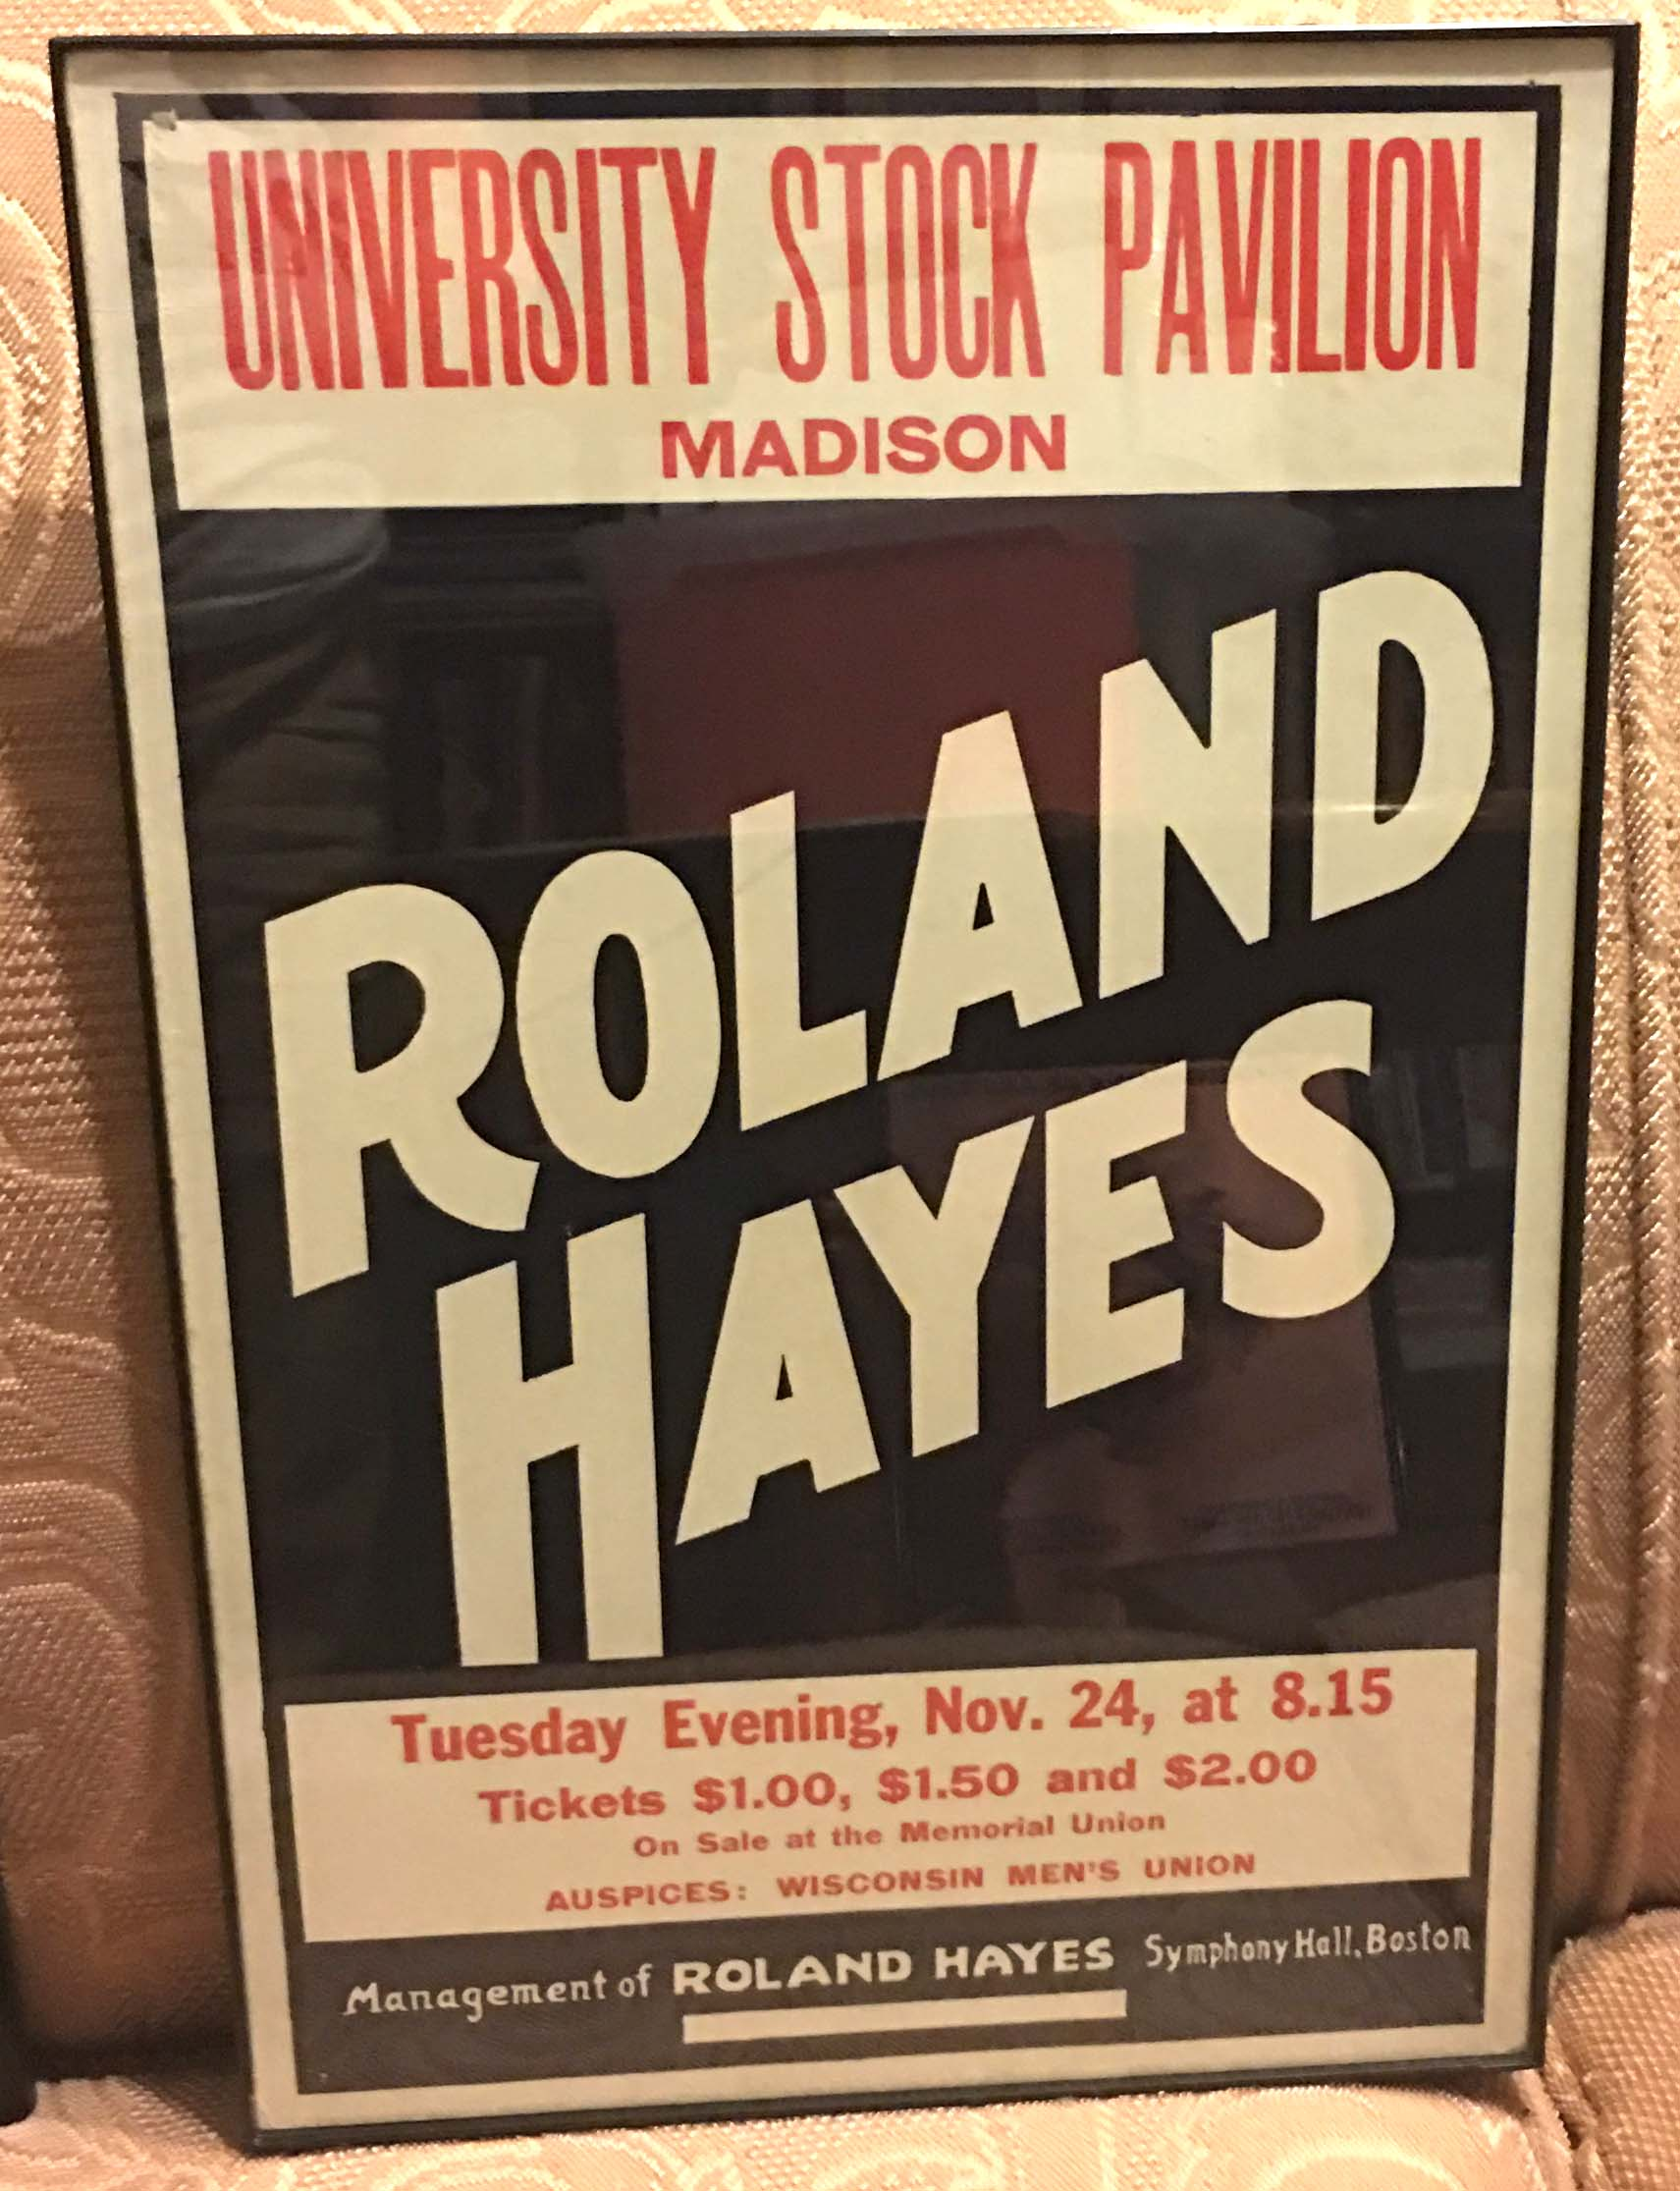 Image for Poster - Roland Hayes at University Stock Pavilion, Madison Wisconsin